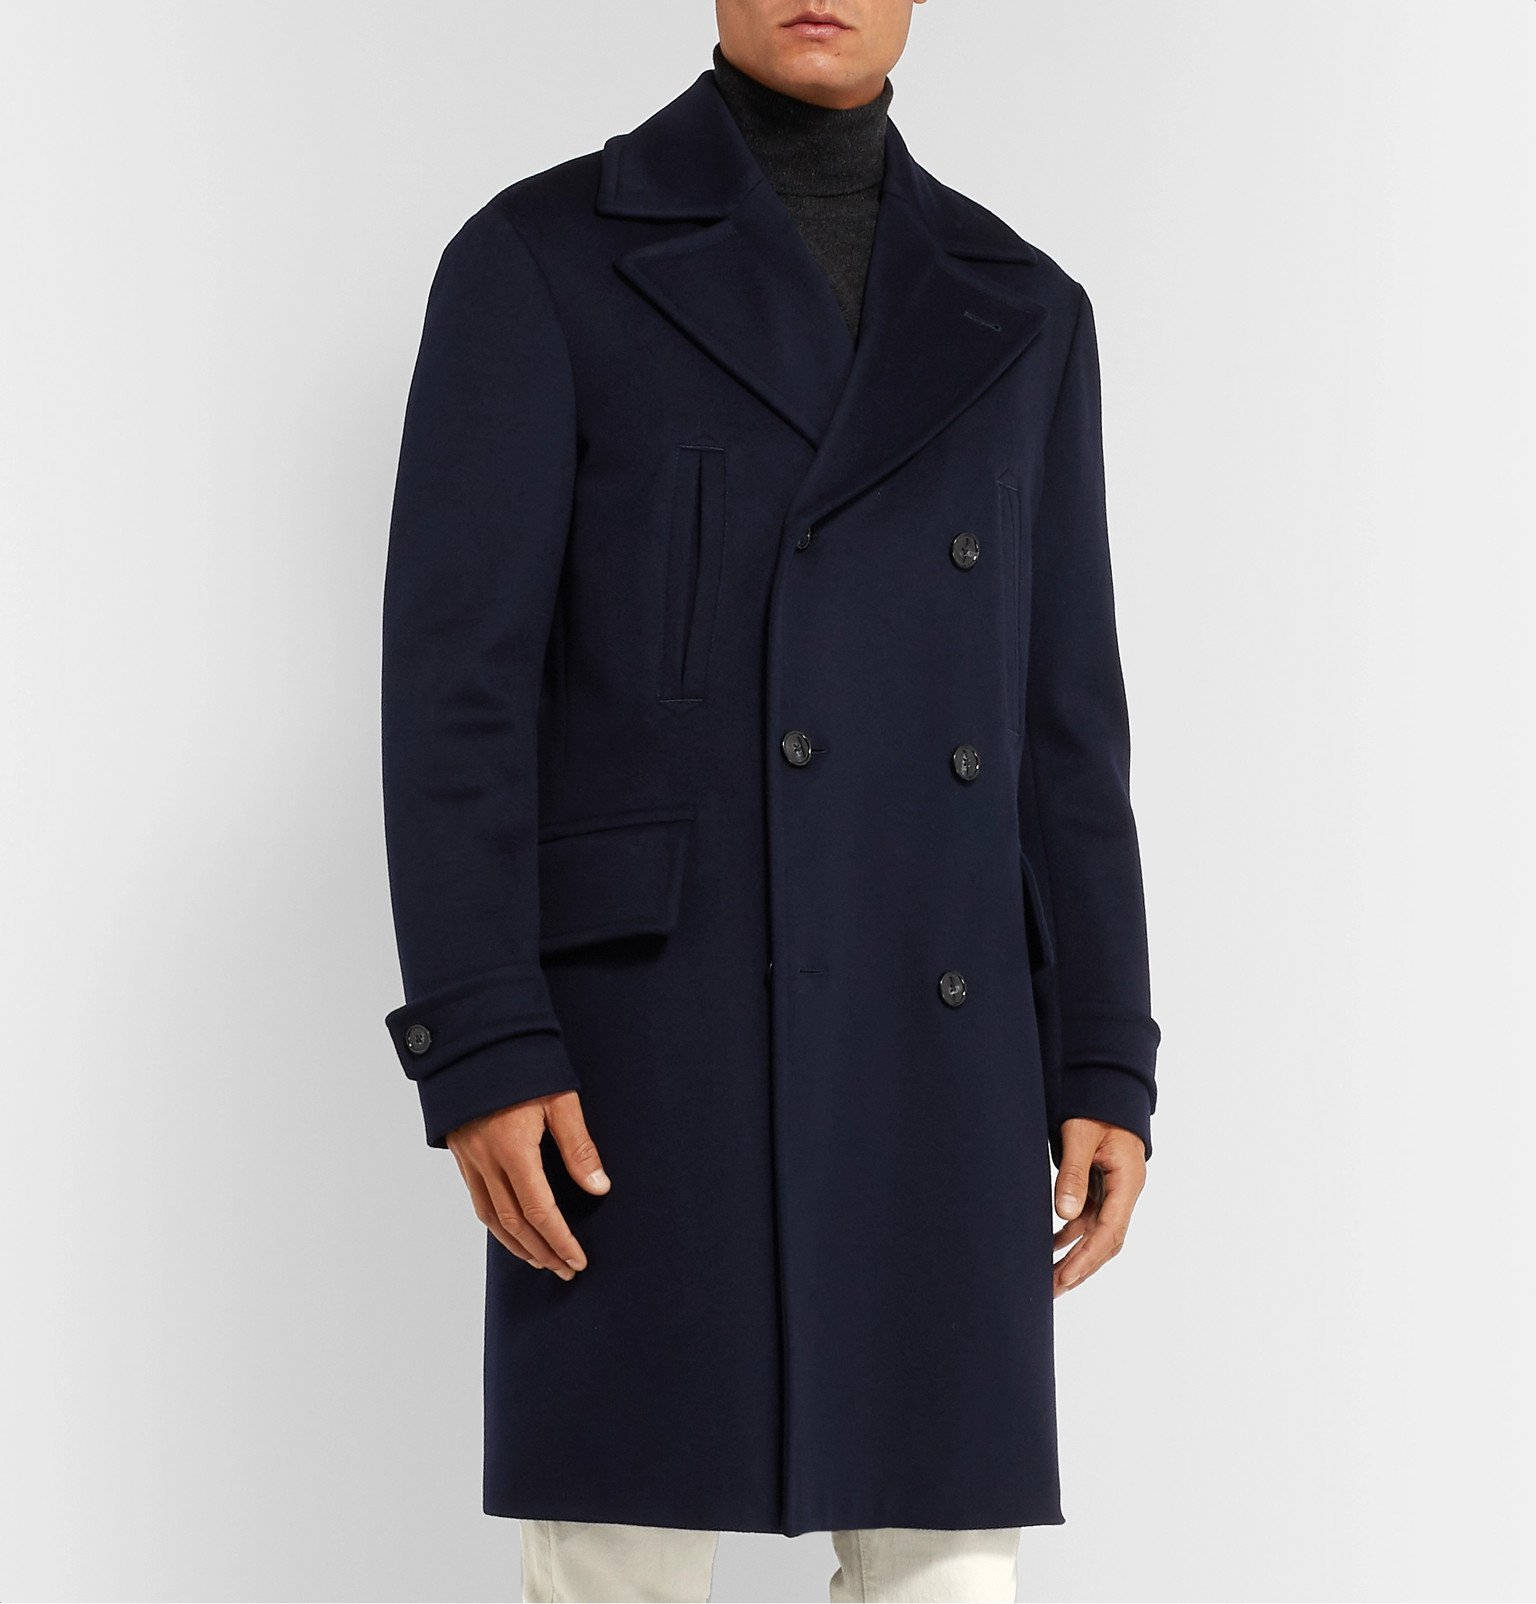 Officine Generale - Scott Double-Breasted Storm System Wool Coat - Blue